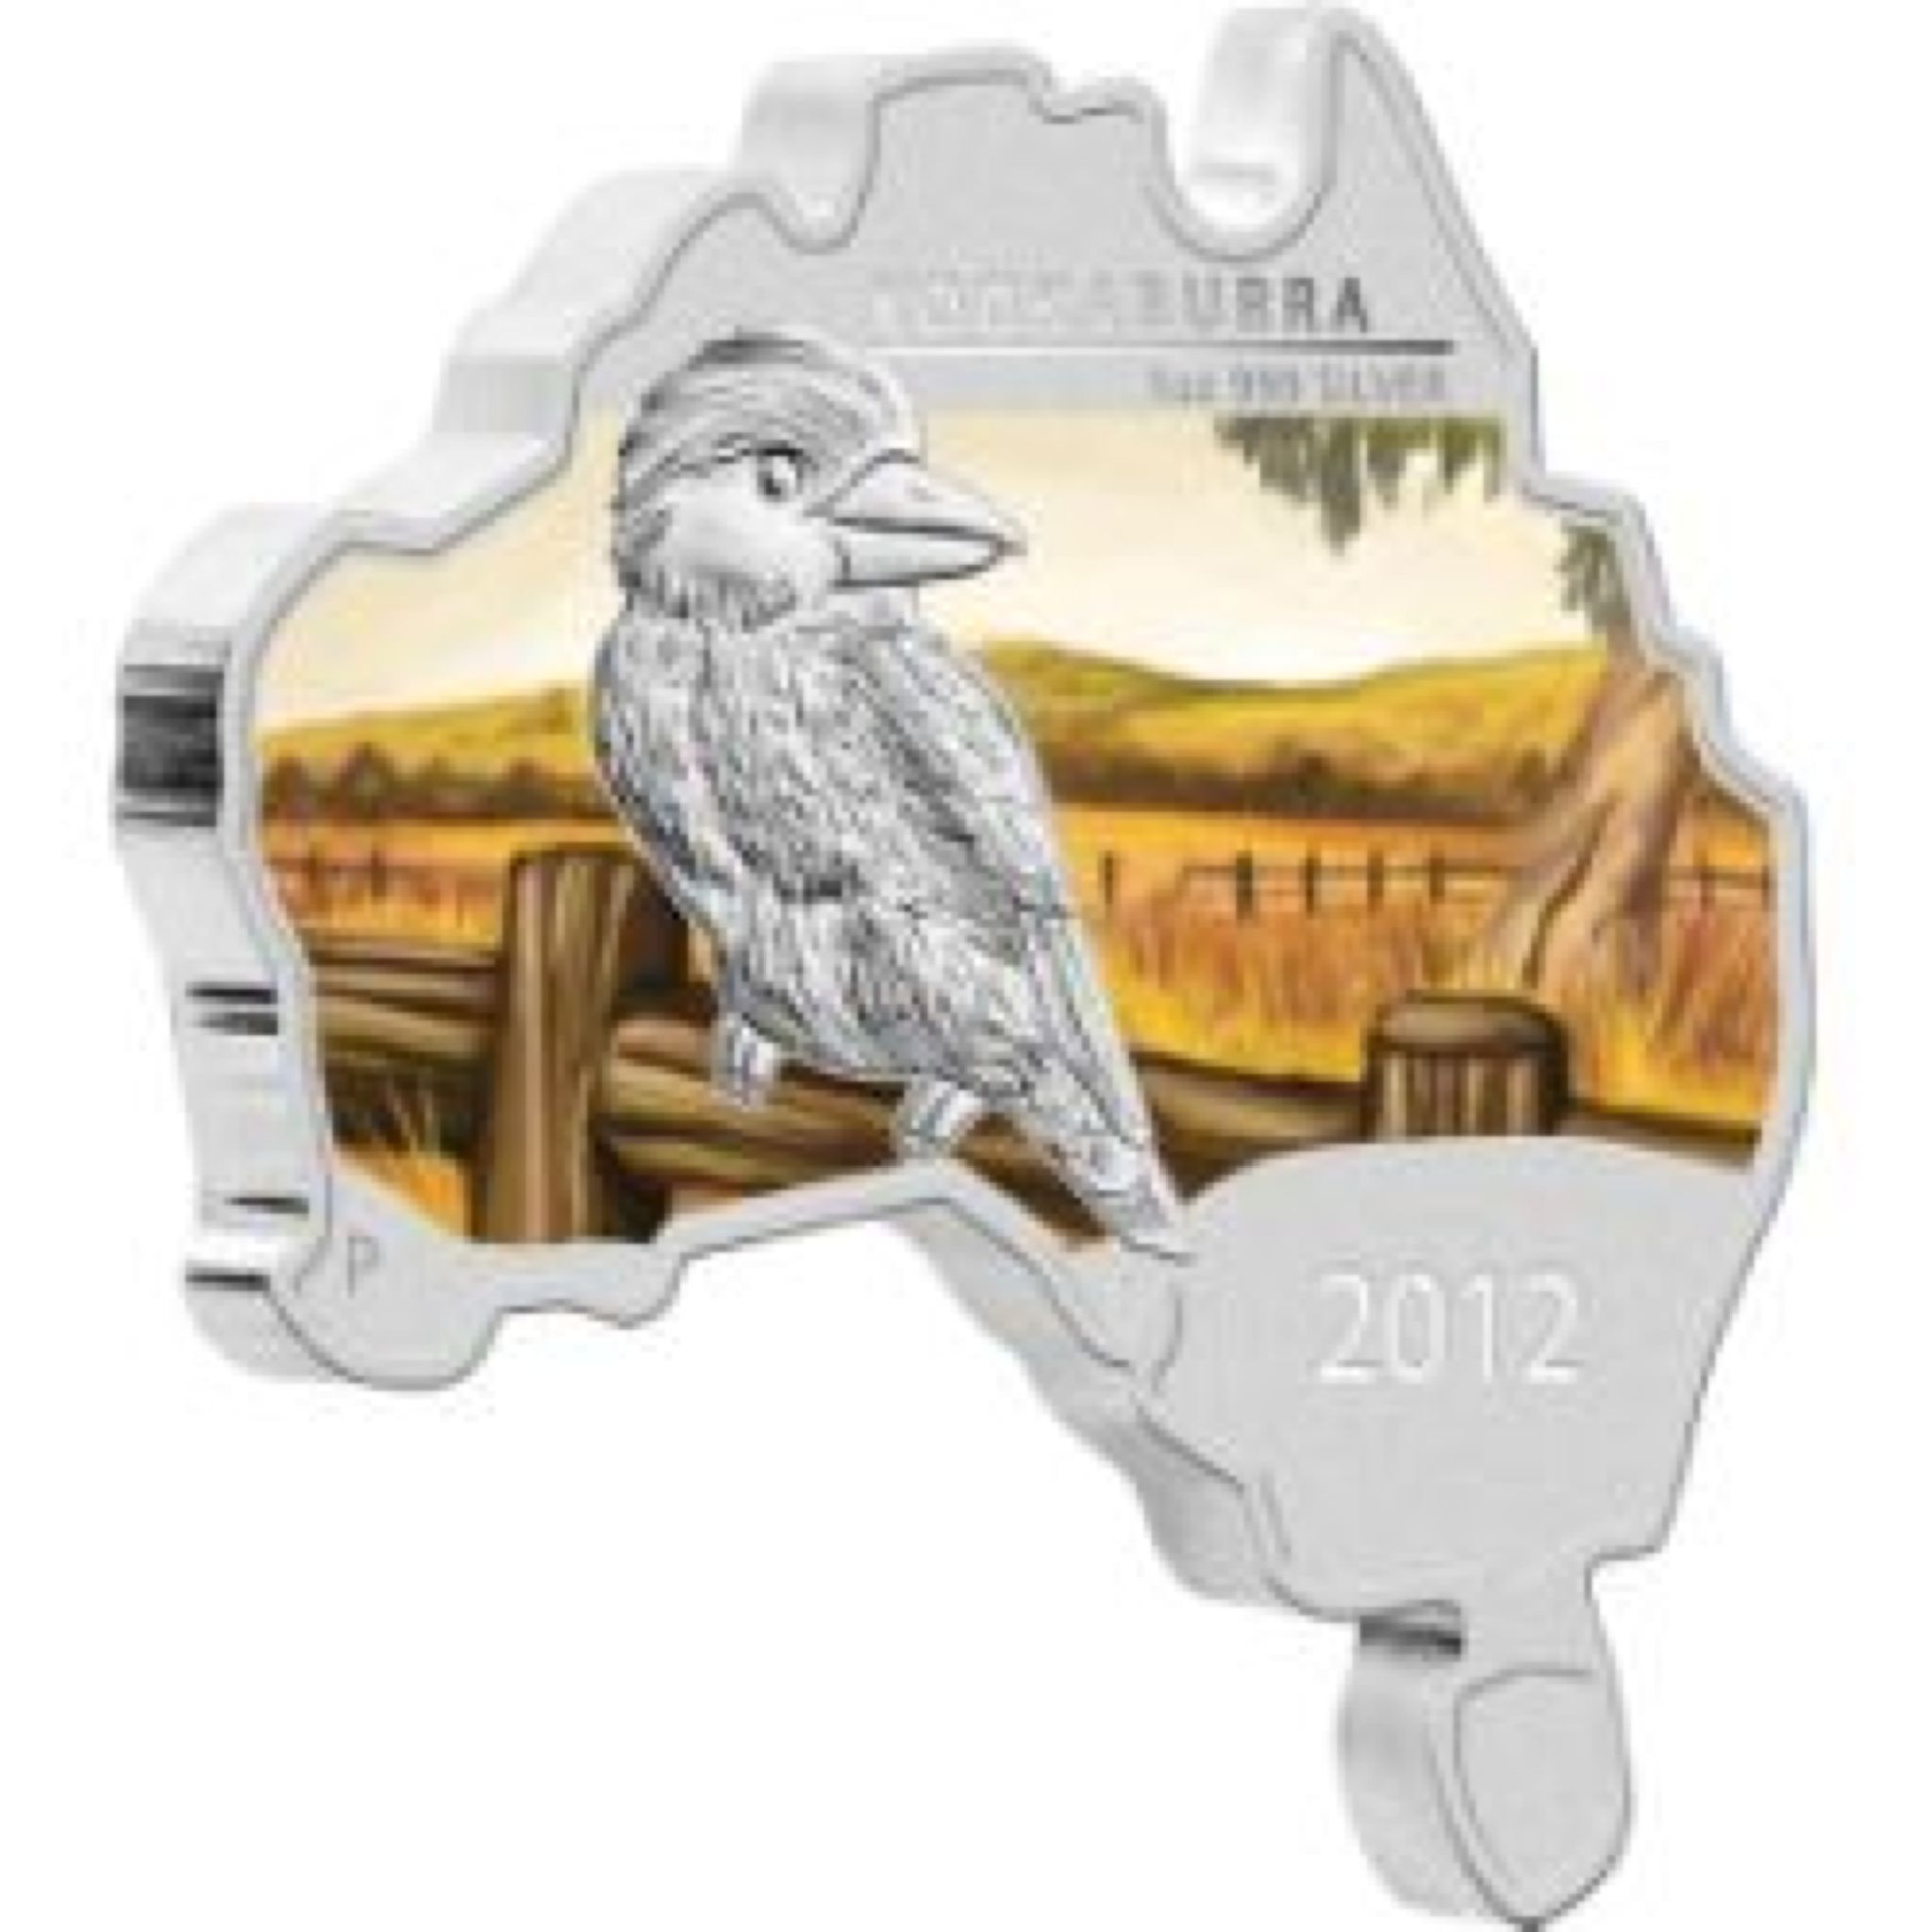 2012 Kookaburra 1oz Map Shape Coin - $1 (2012) front image (front cover)